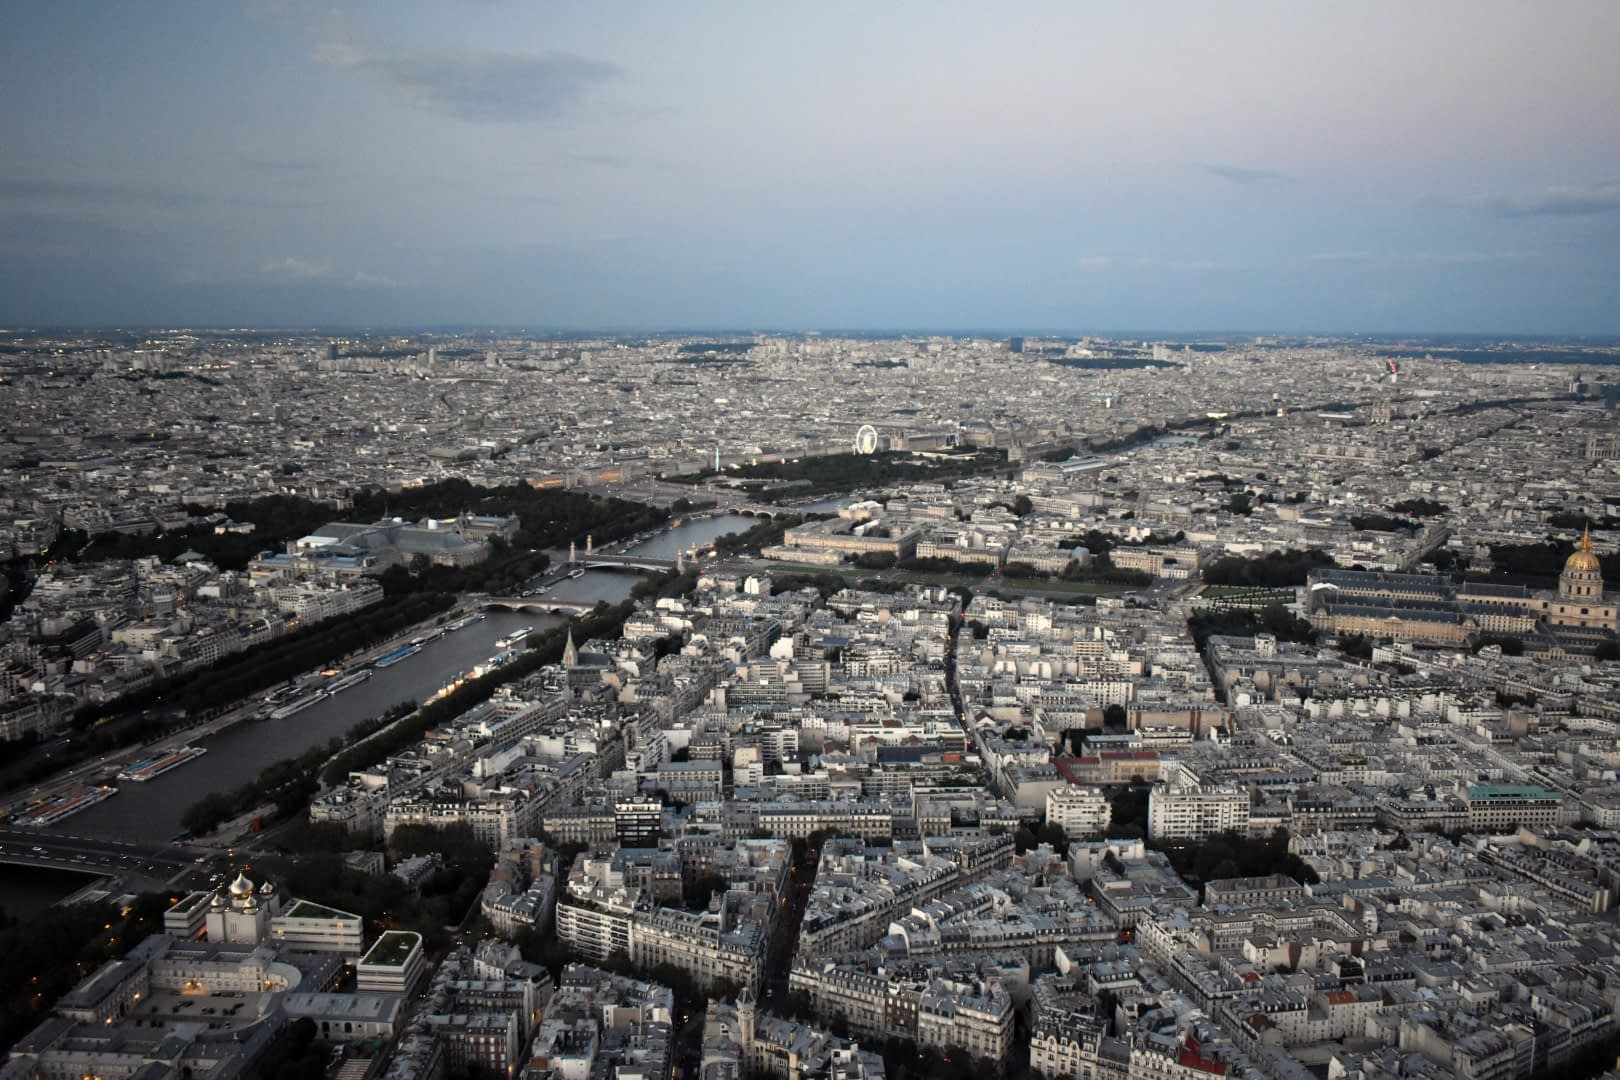 Louvre and Les Invalides, top of the Eiffel Tower, Paris